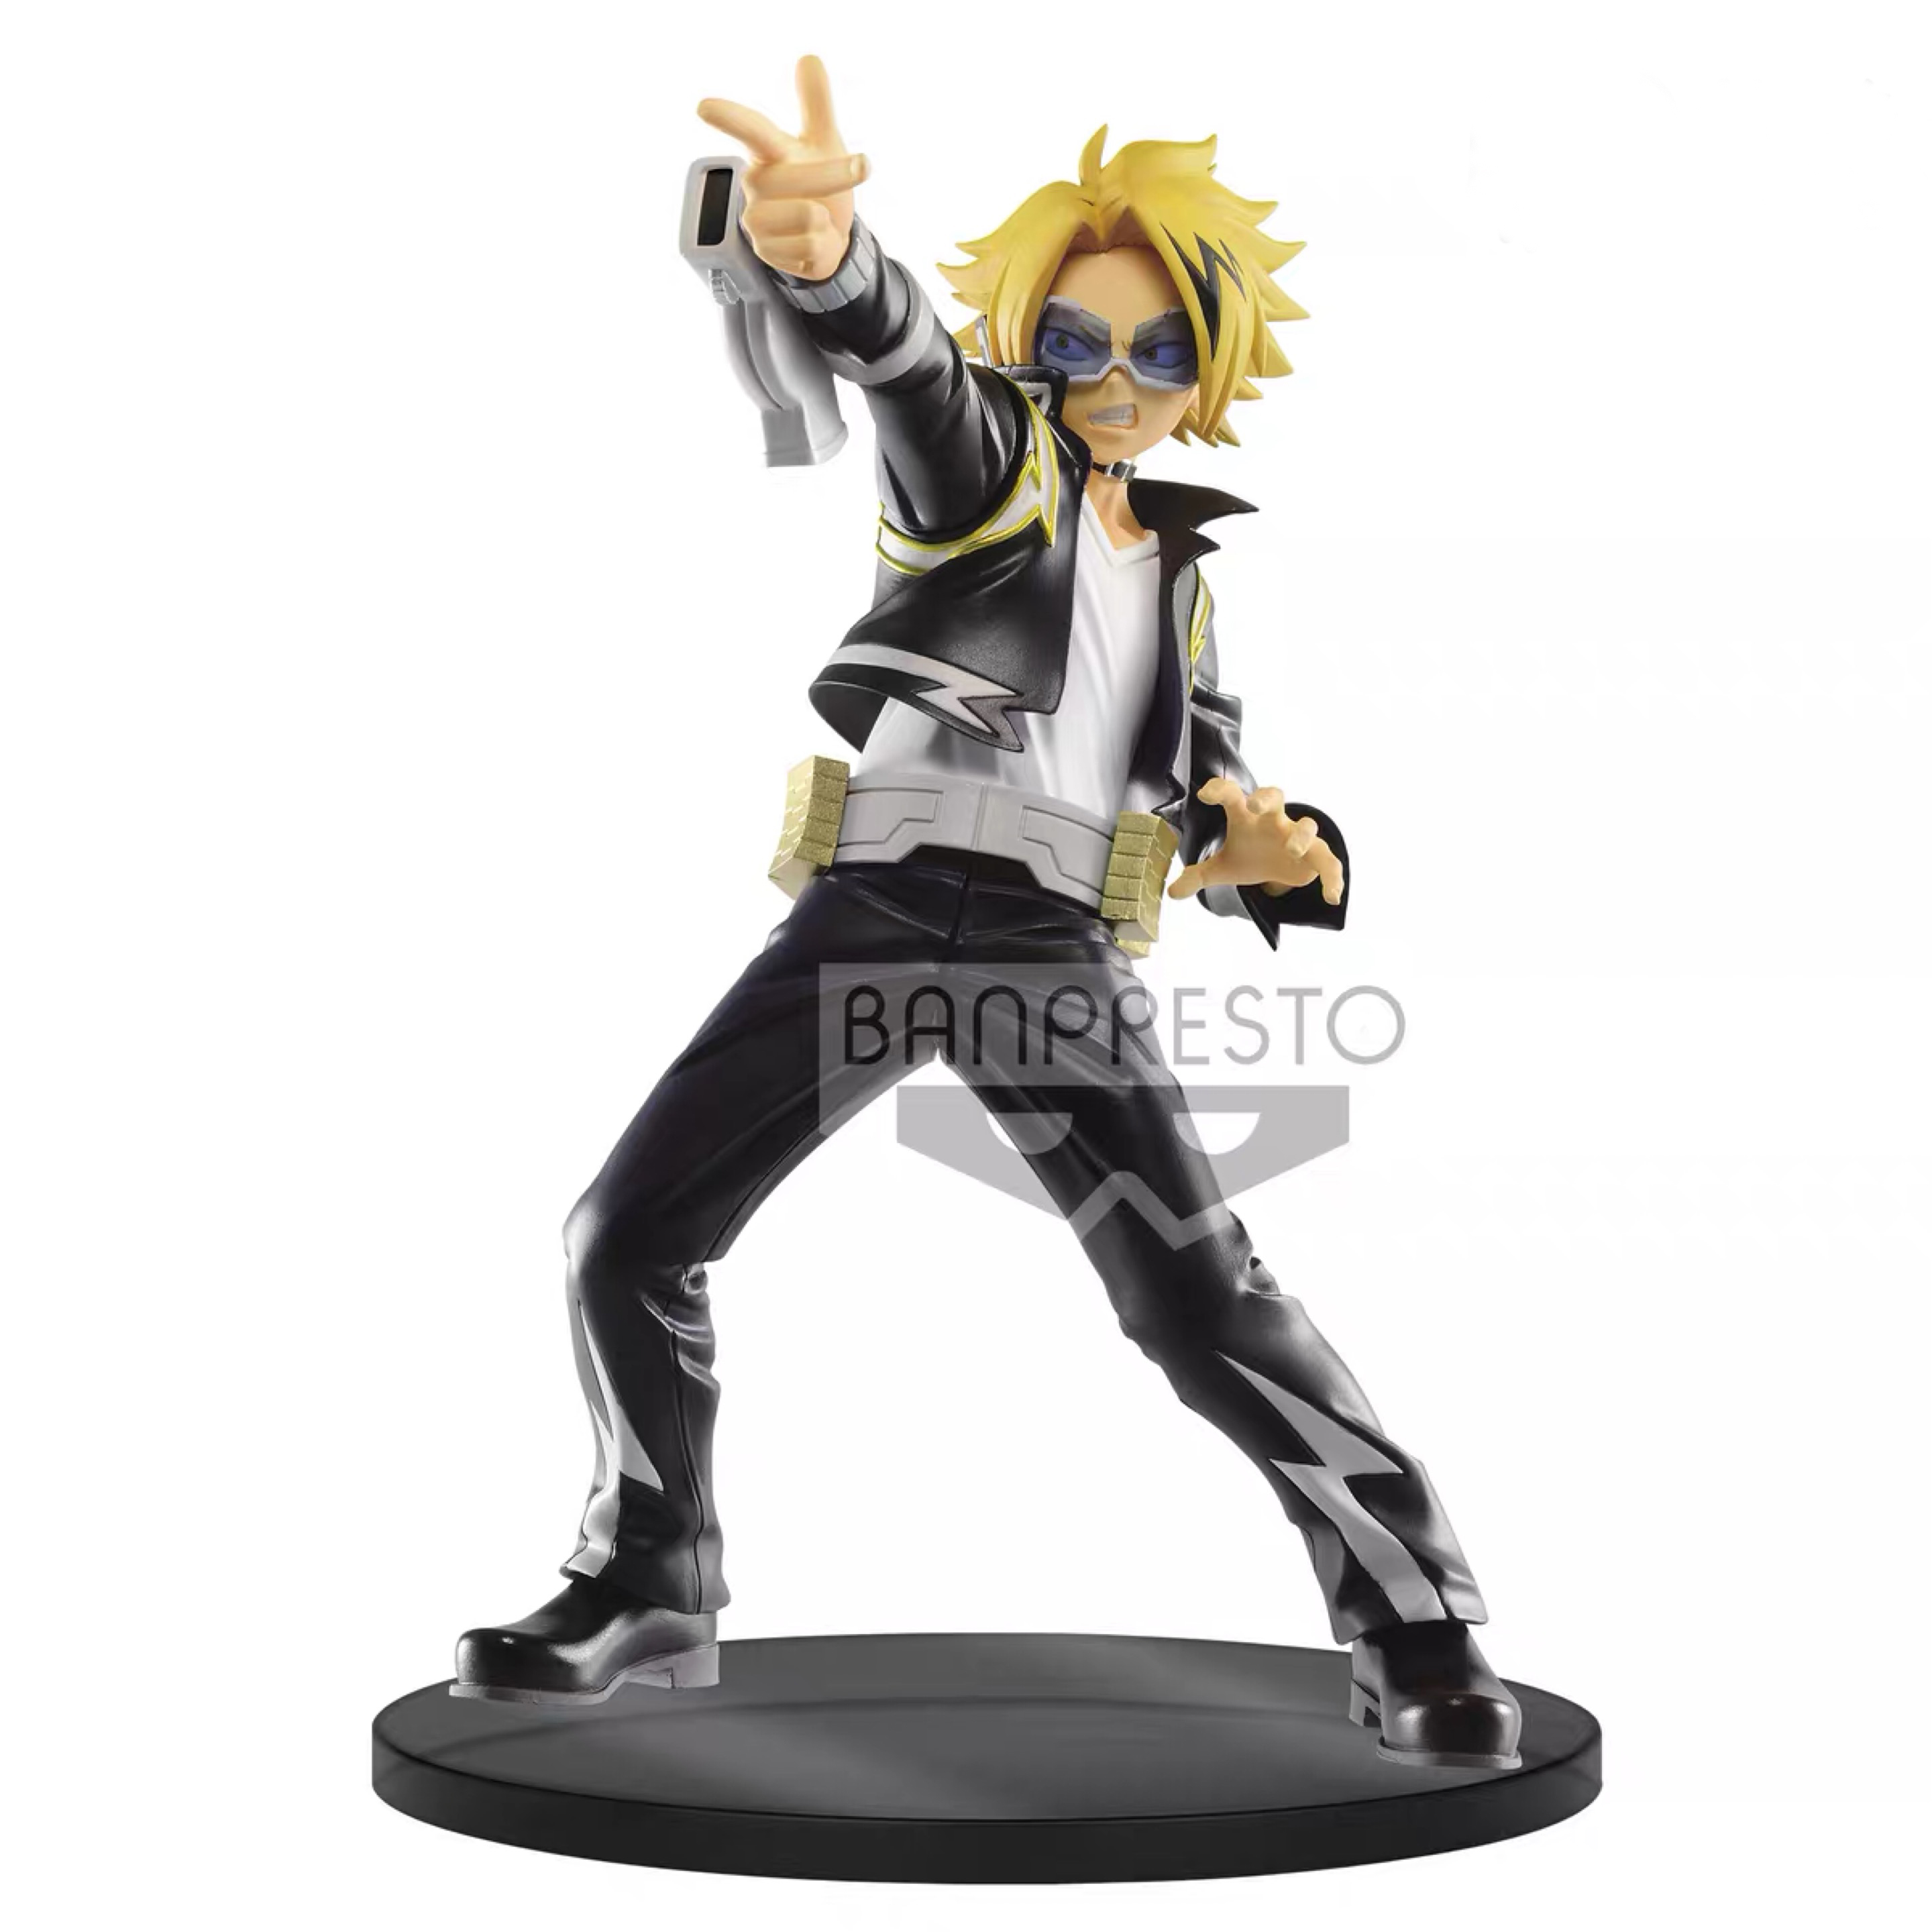 Preorder July Original Banpresto My Hero Academia The Amazing Heroes Figure Kaminari Denki PVC Action Model Figurine